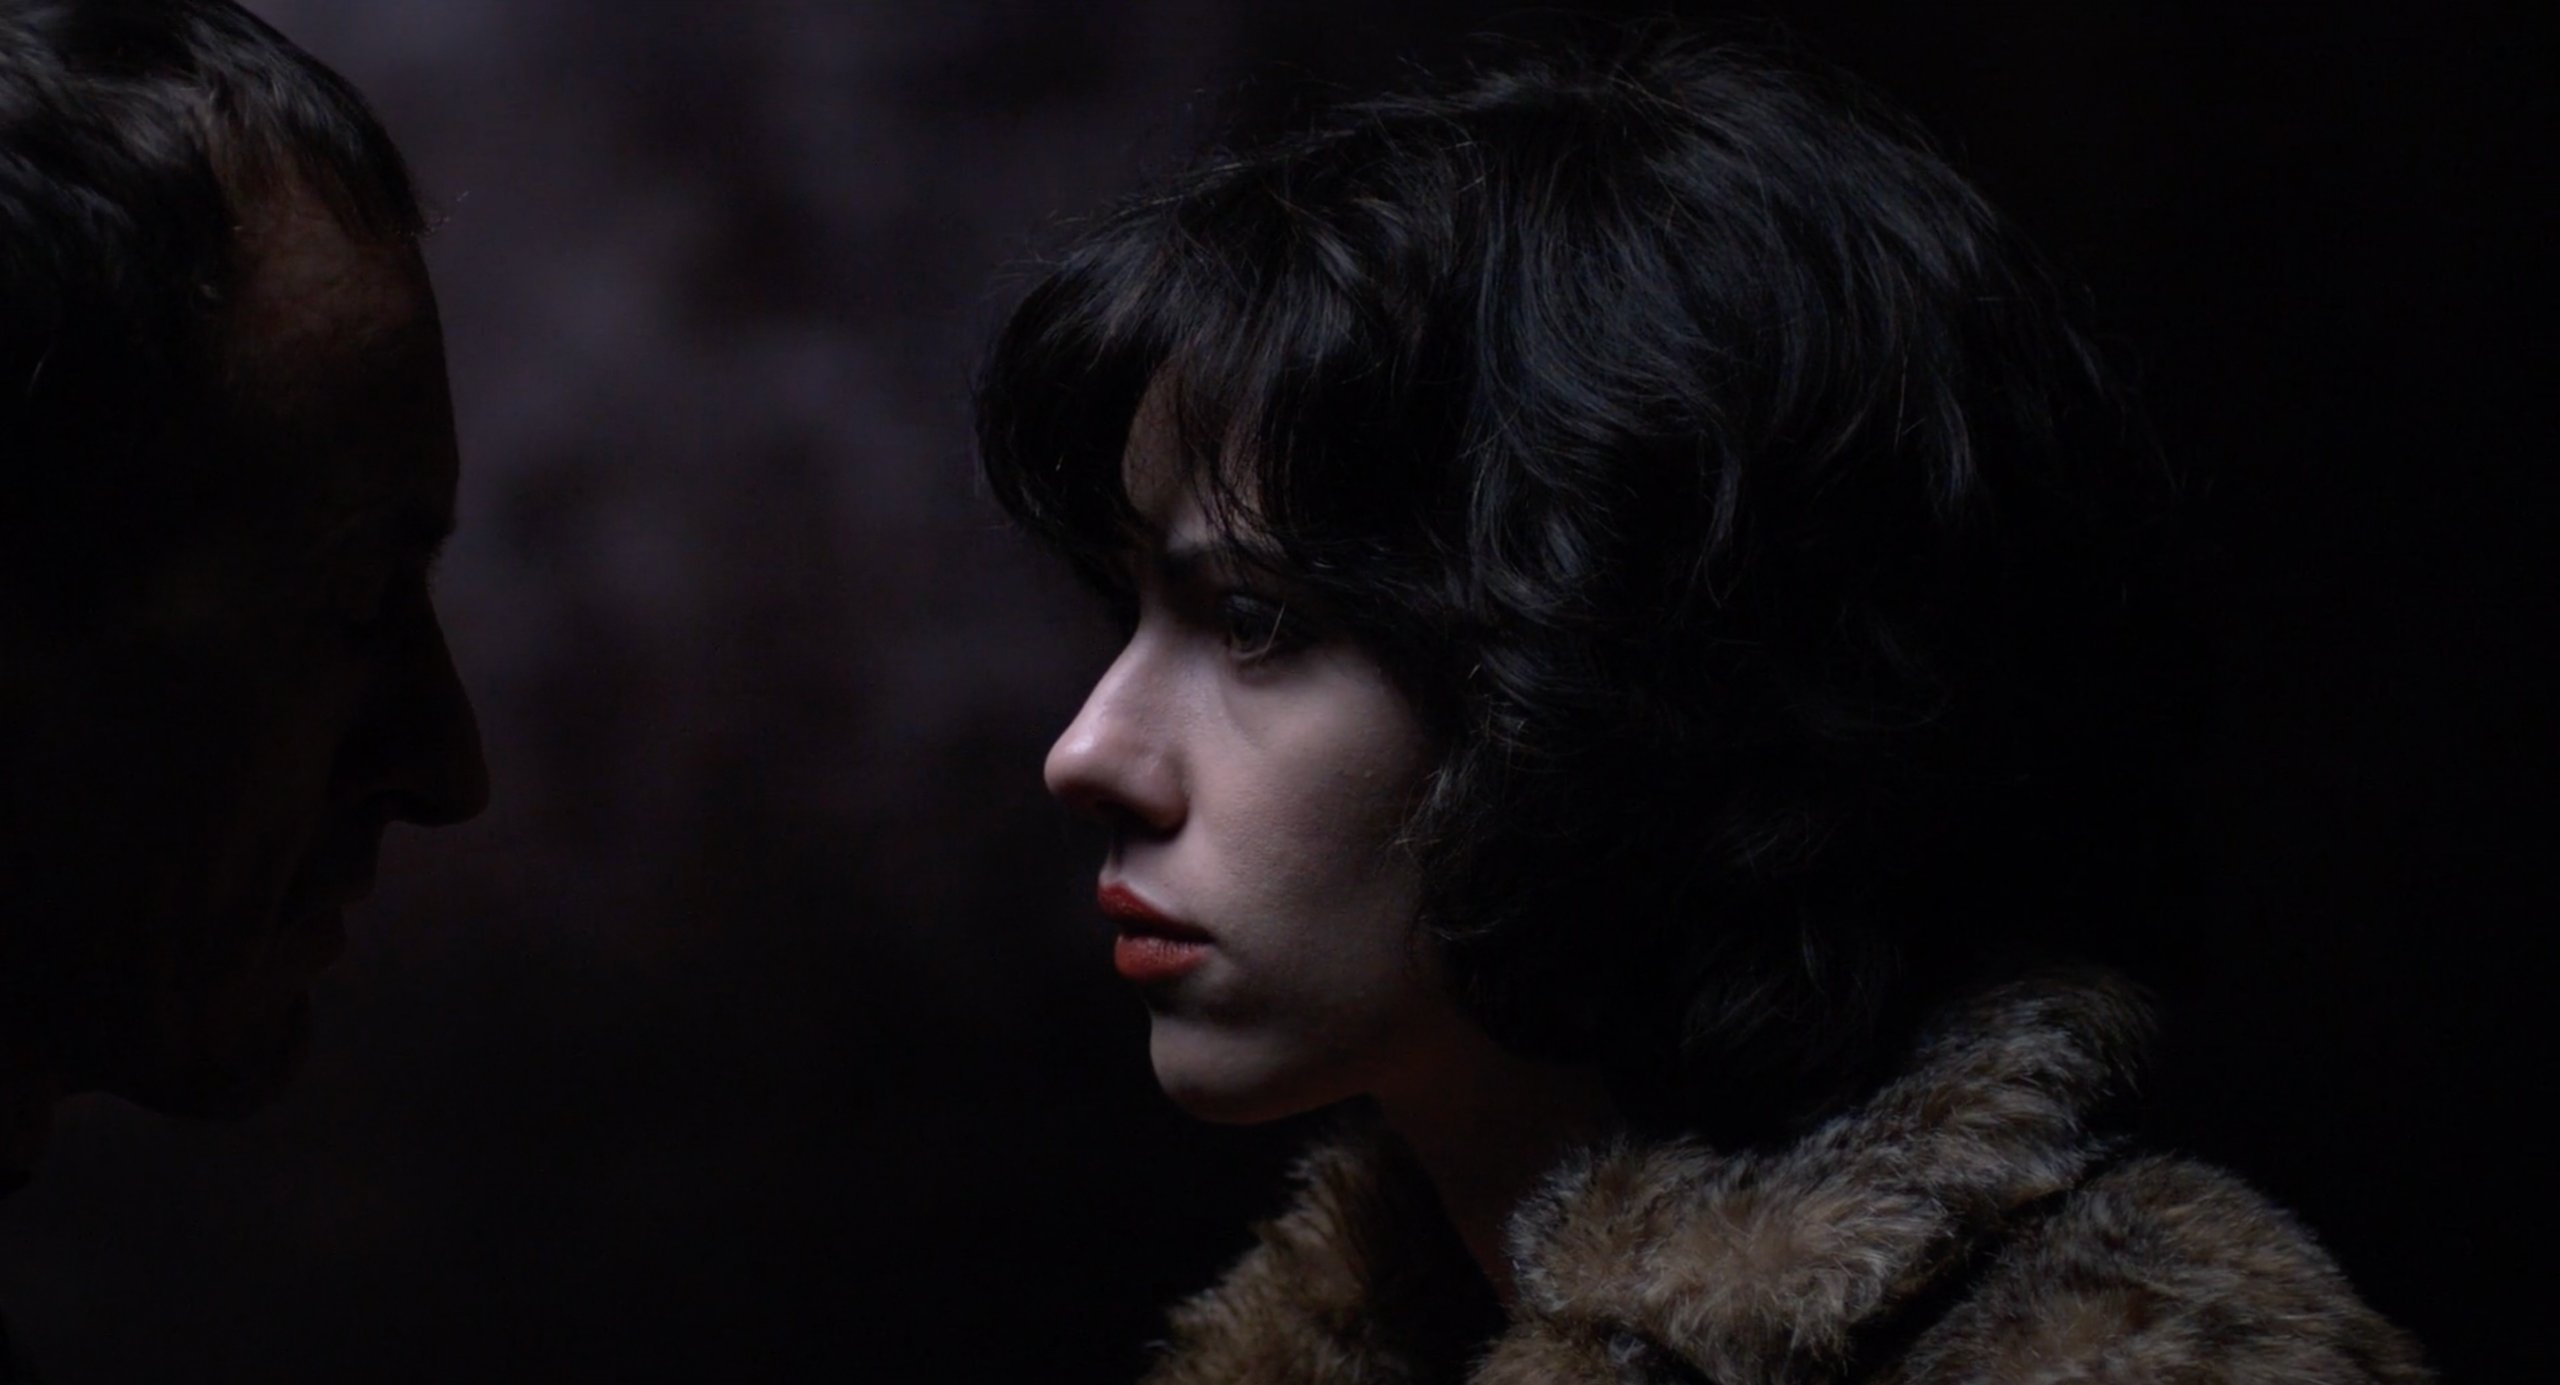 The Motorcycle Man inspects Scarlett Johansson in Under the Skin